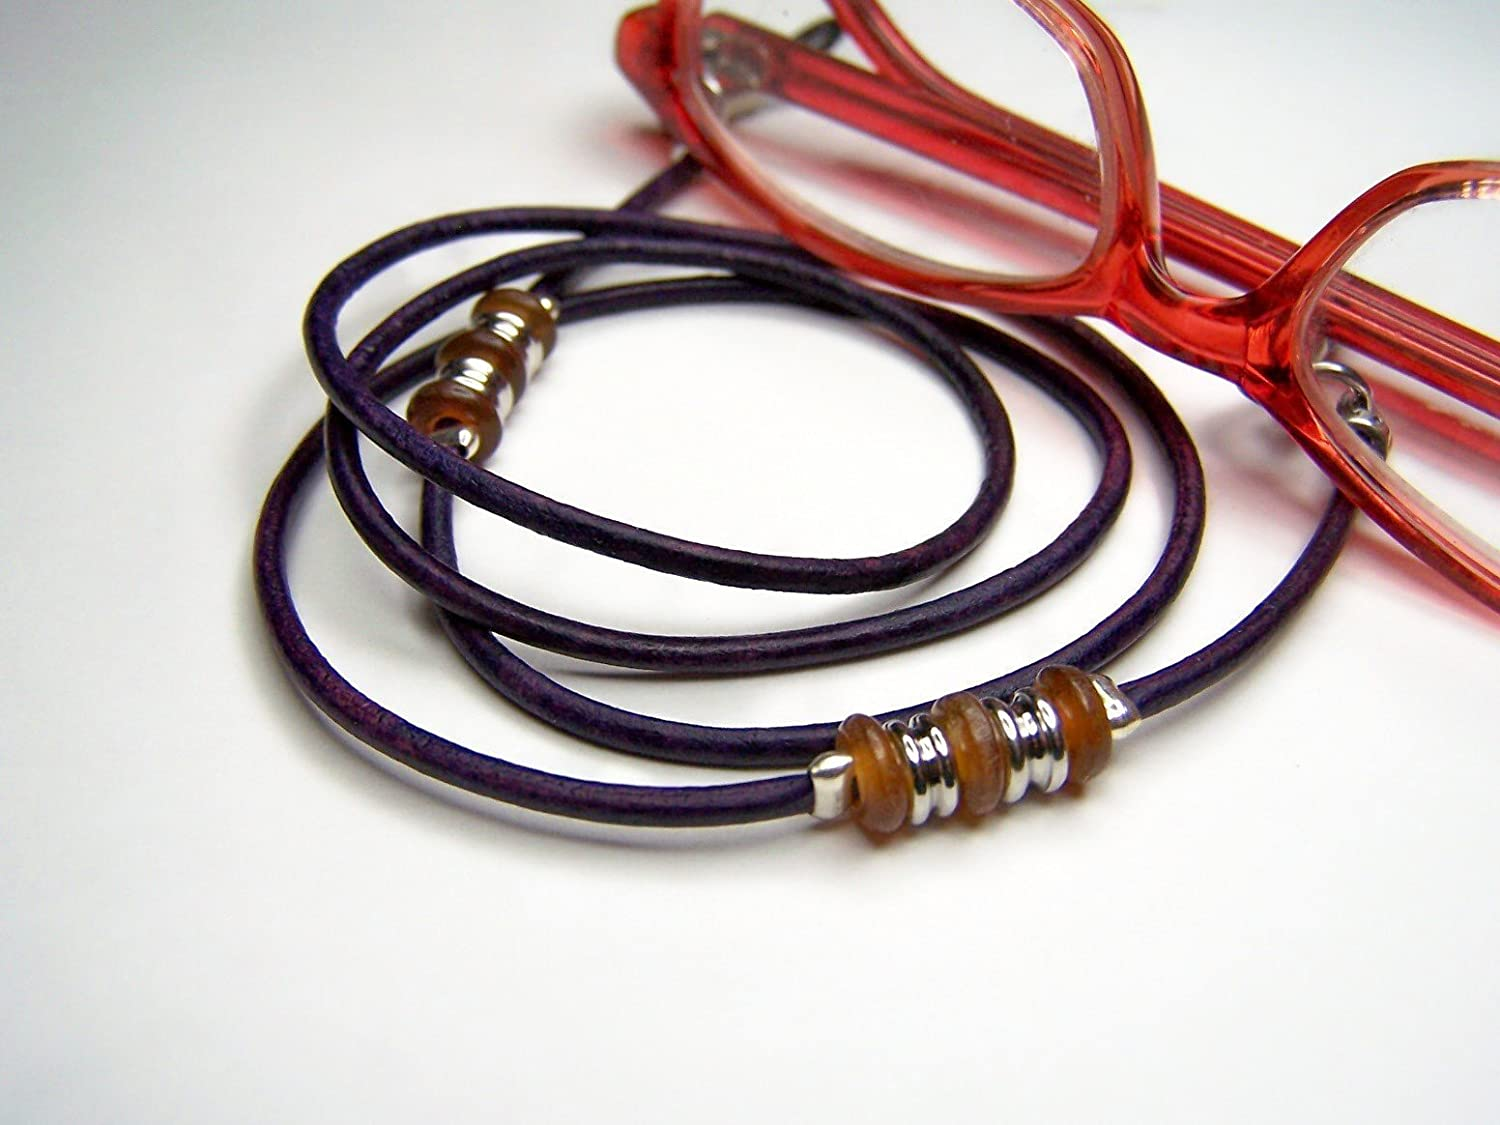 Custom Purple Leather Eyeglass Cord, With Horn Beads, Lengths From 24 - 34